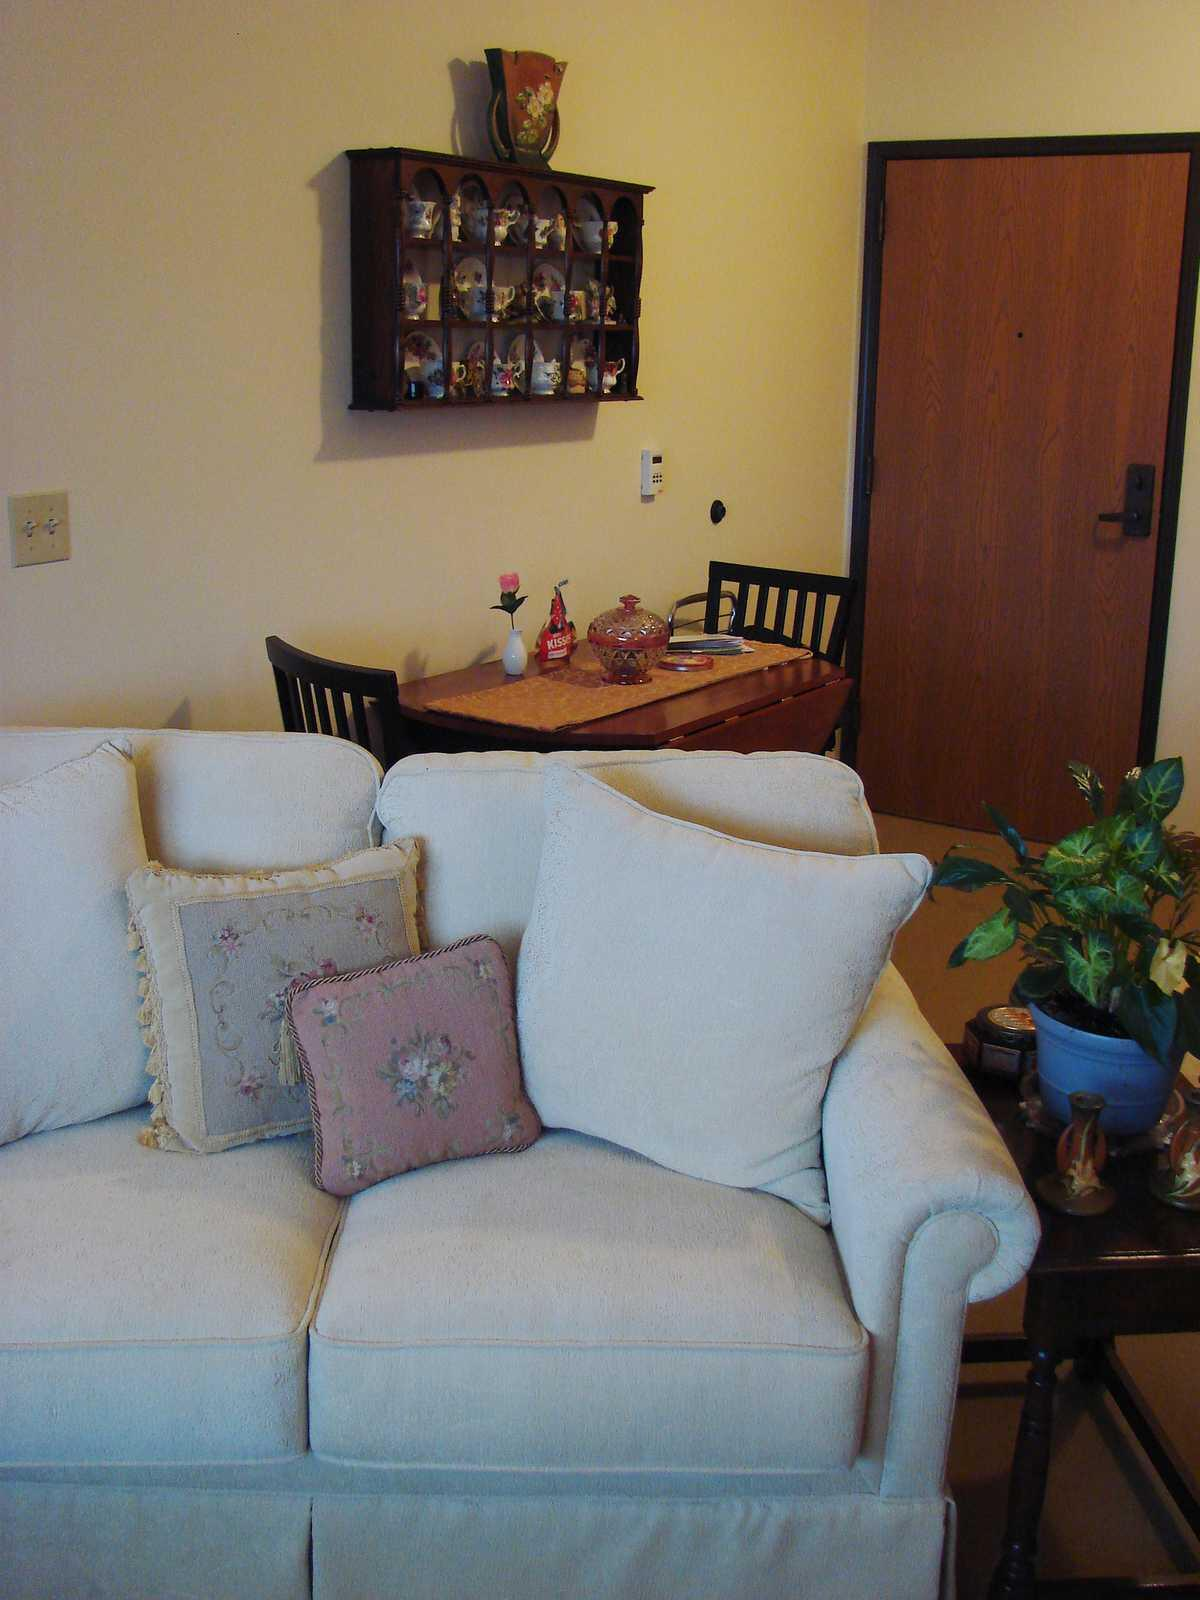 Photo of Heritage Woods of Belvidere, Assisted Living, Belvidere, IL 4